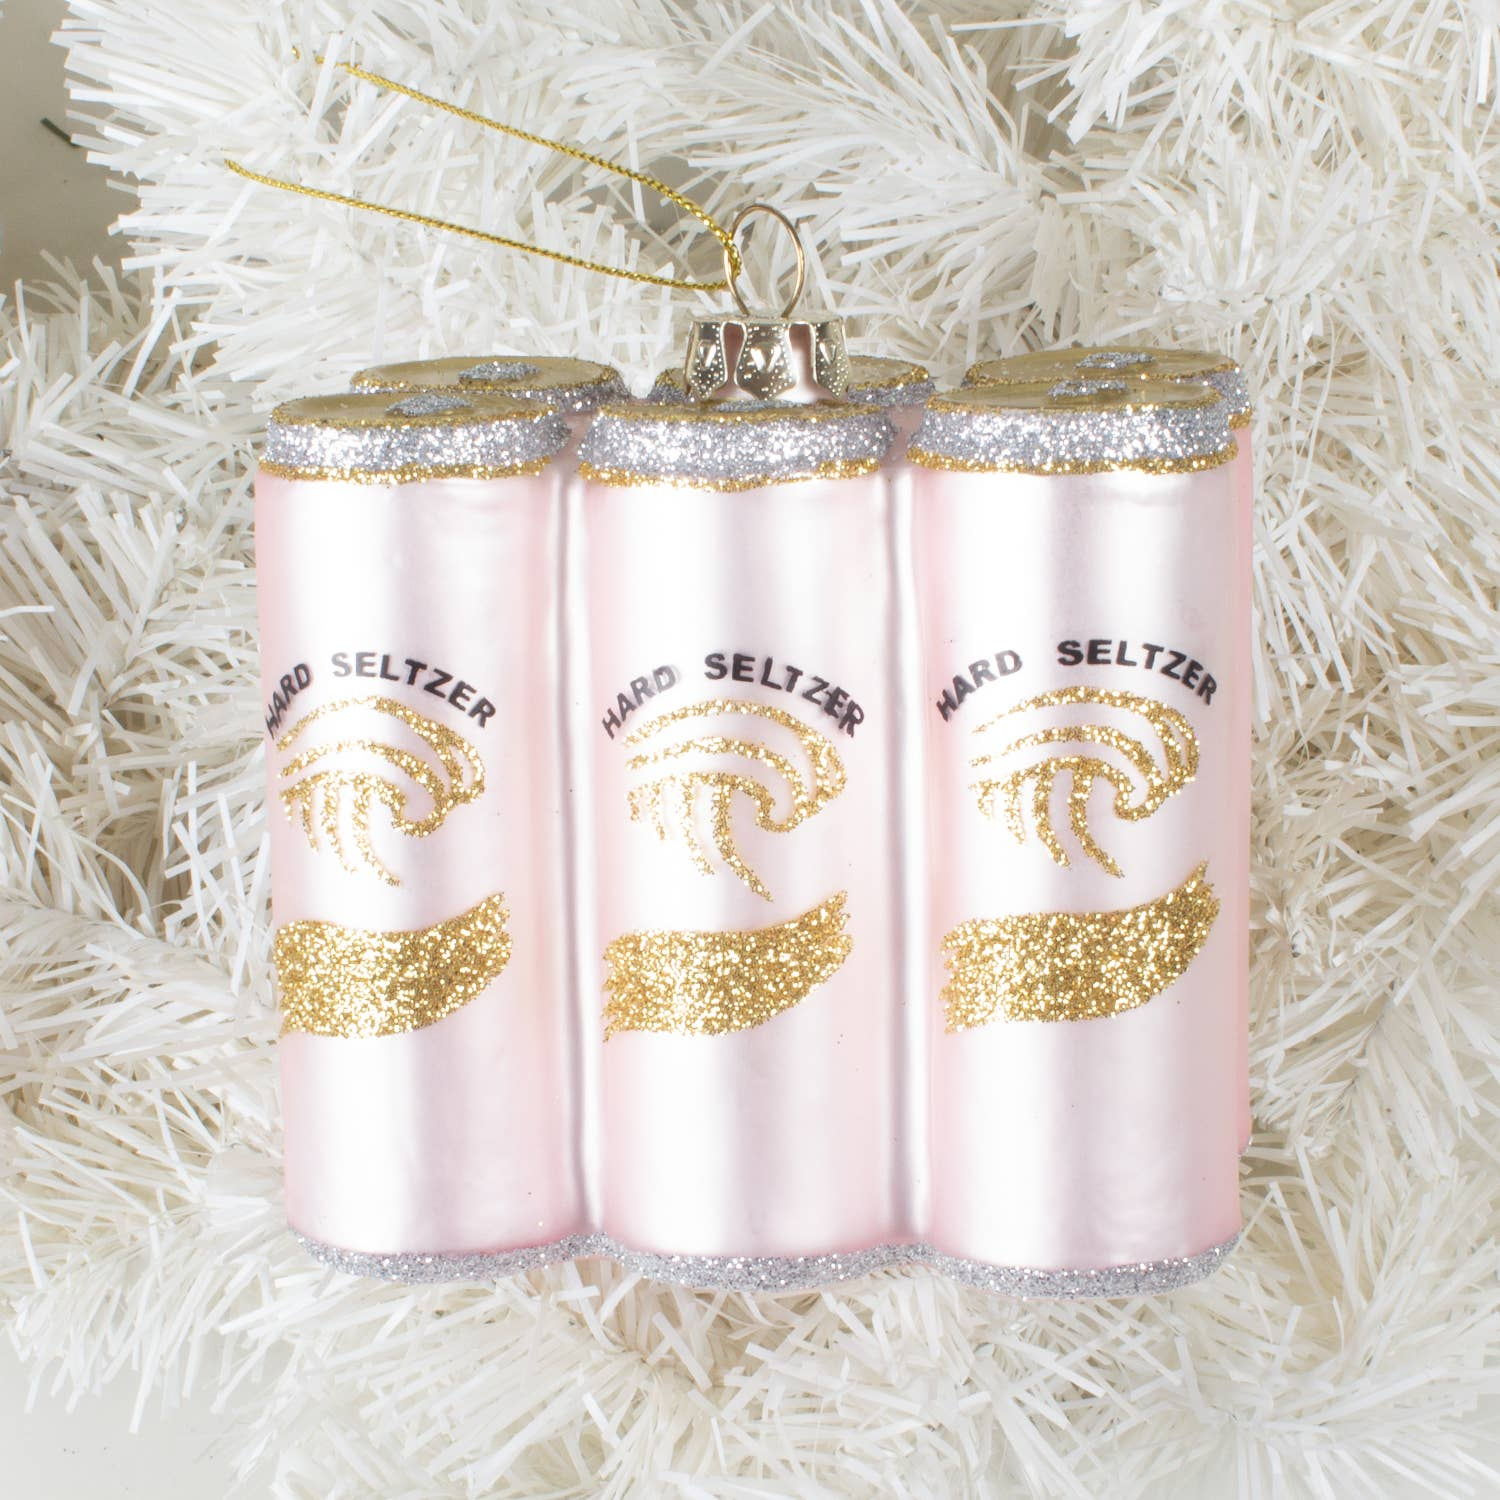 "It's all the rage! Everyone is drinking it! Now, everyone is putting it on their tree! Our hard seltzer six pack is the perfect gift for the millennial on your Christmas list. Made of glass. 6"" X 2.5"" X 2.5"" Comes in retro style gift box."